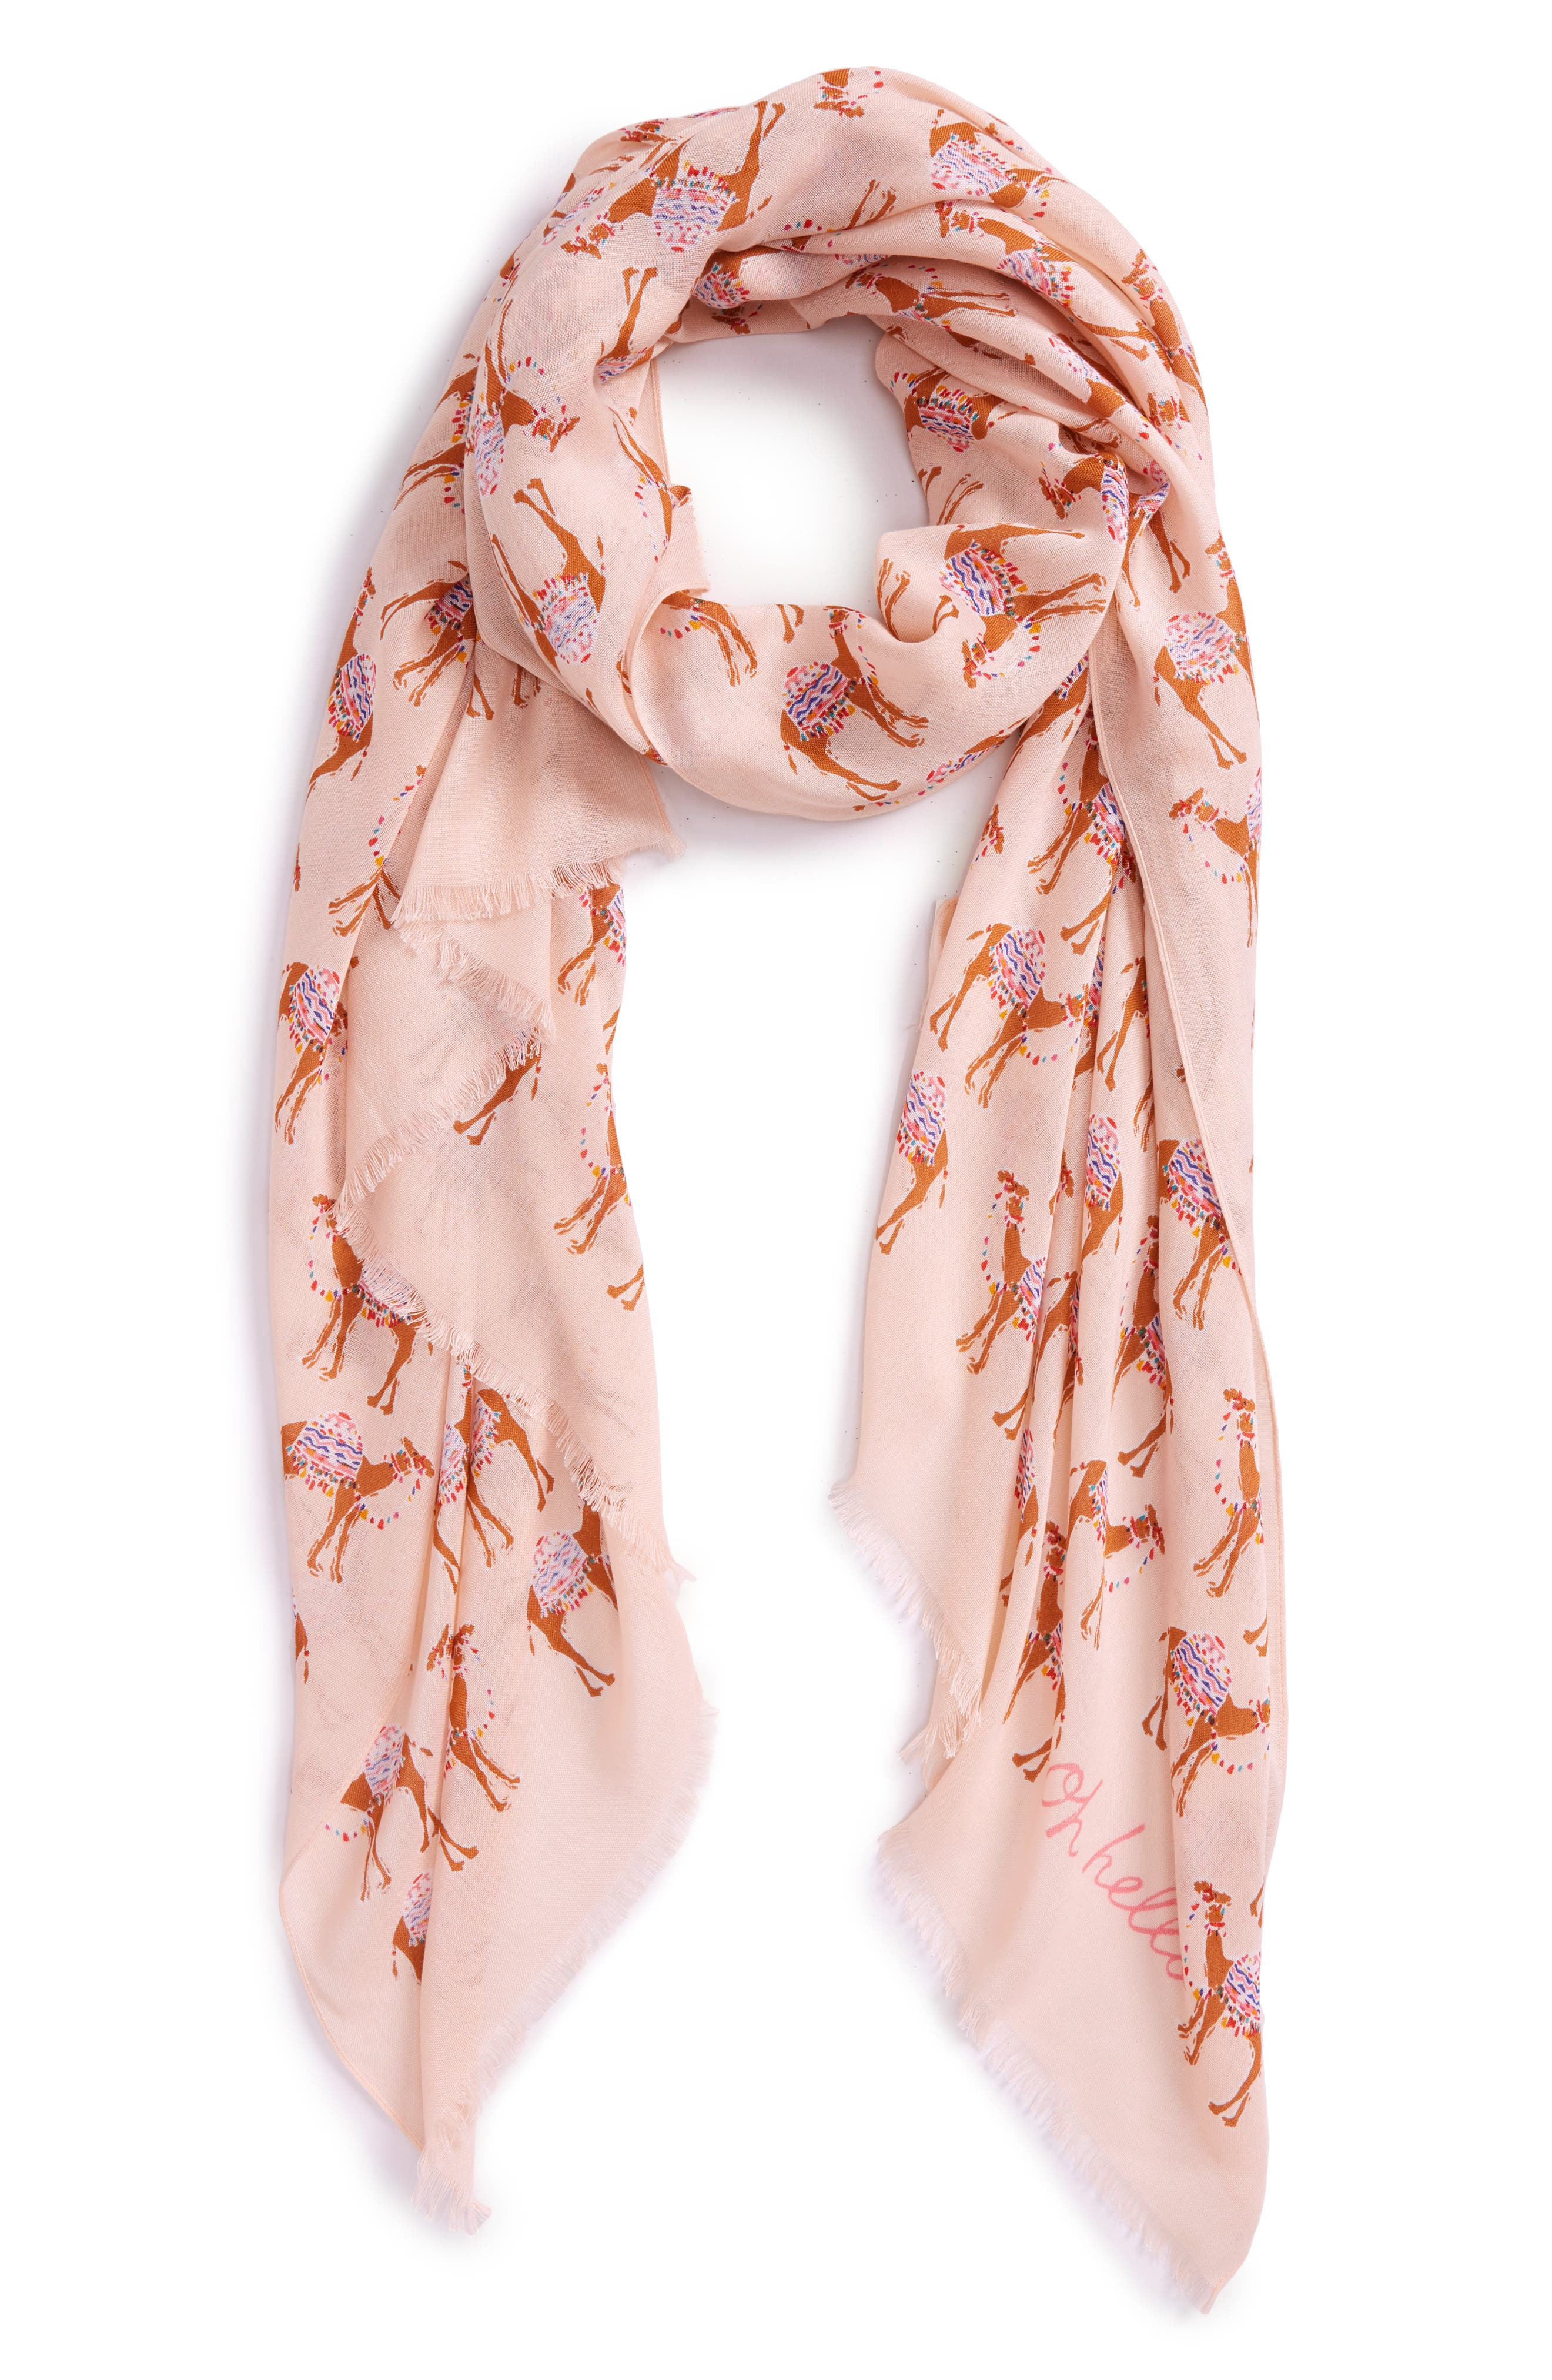 camel march scarf, Main, color, 666